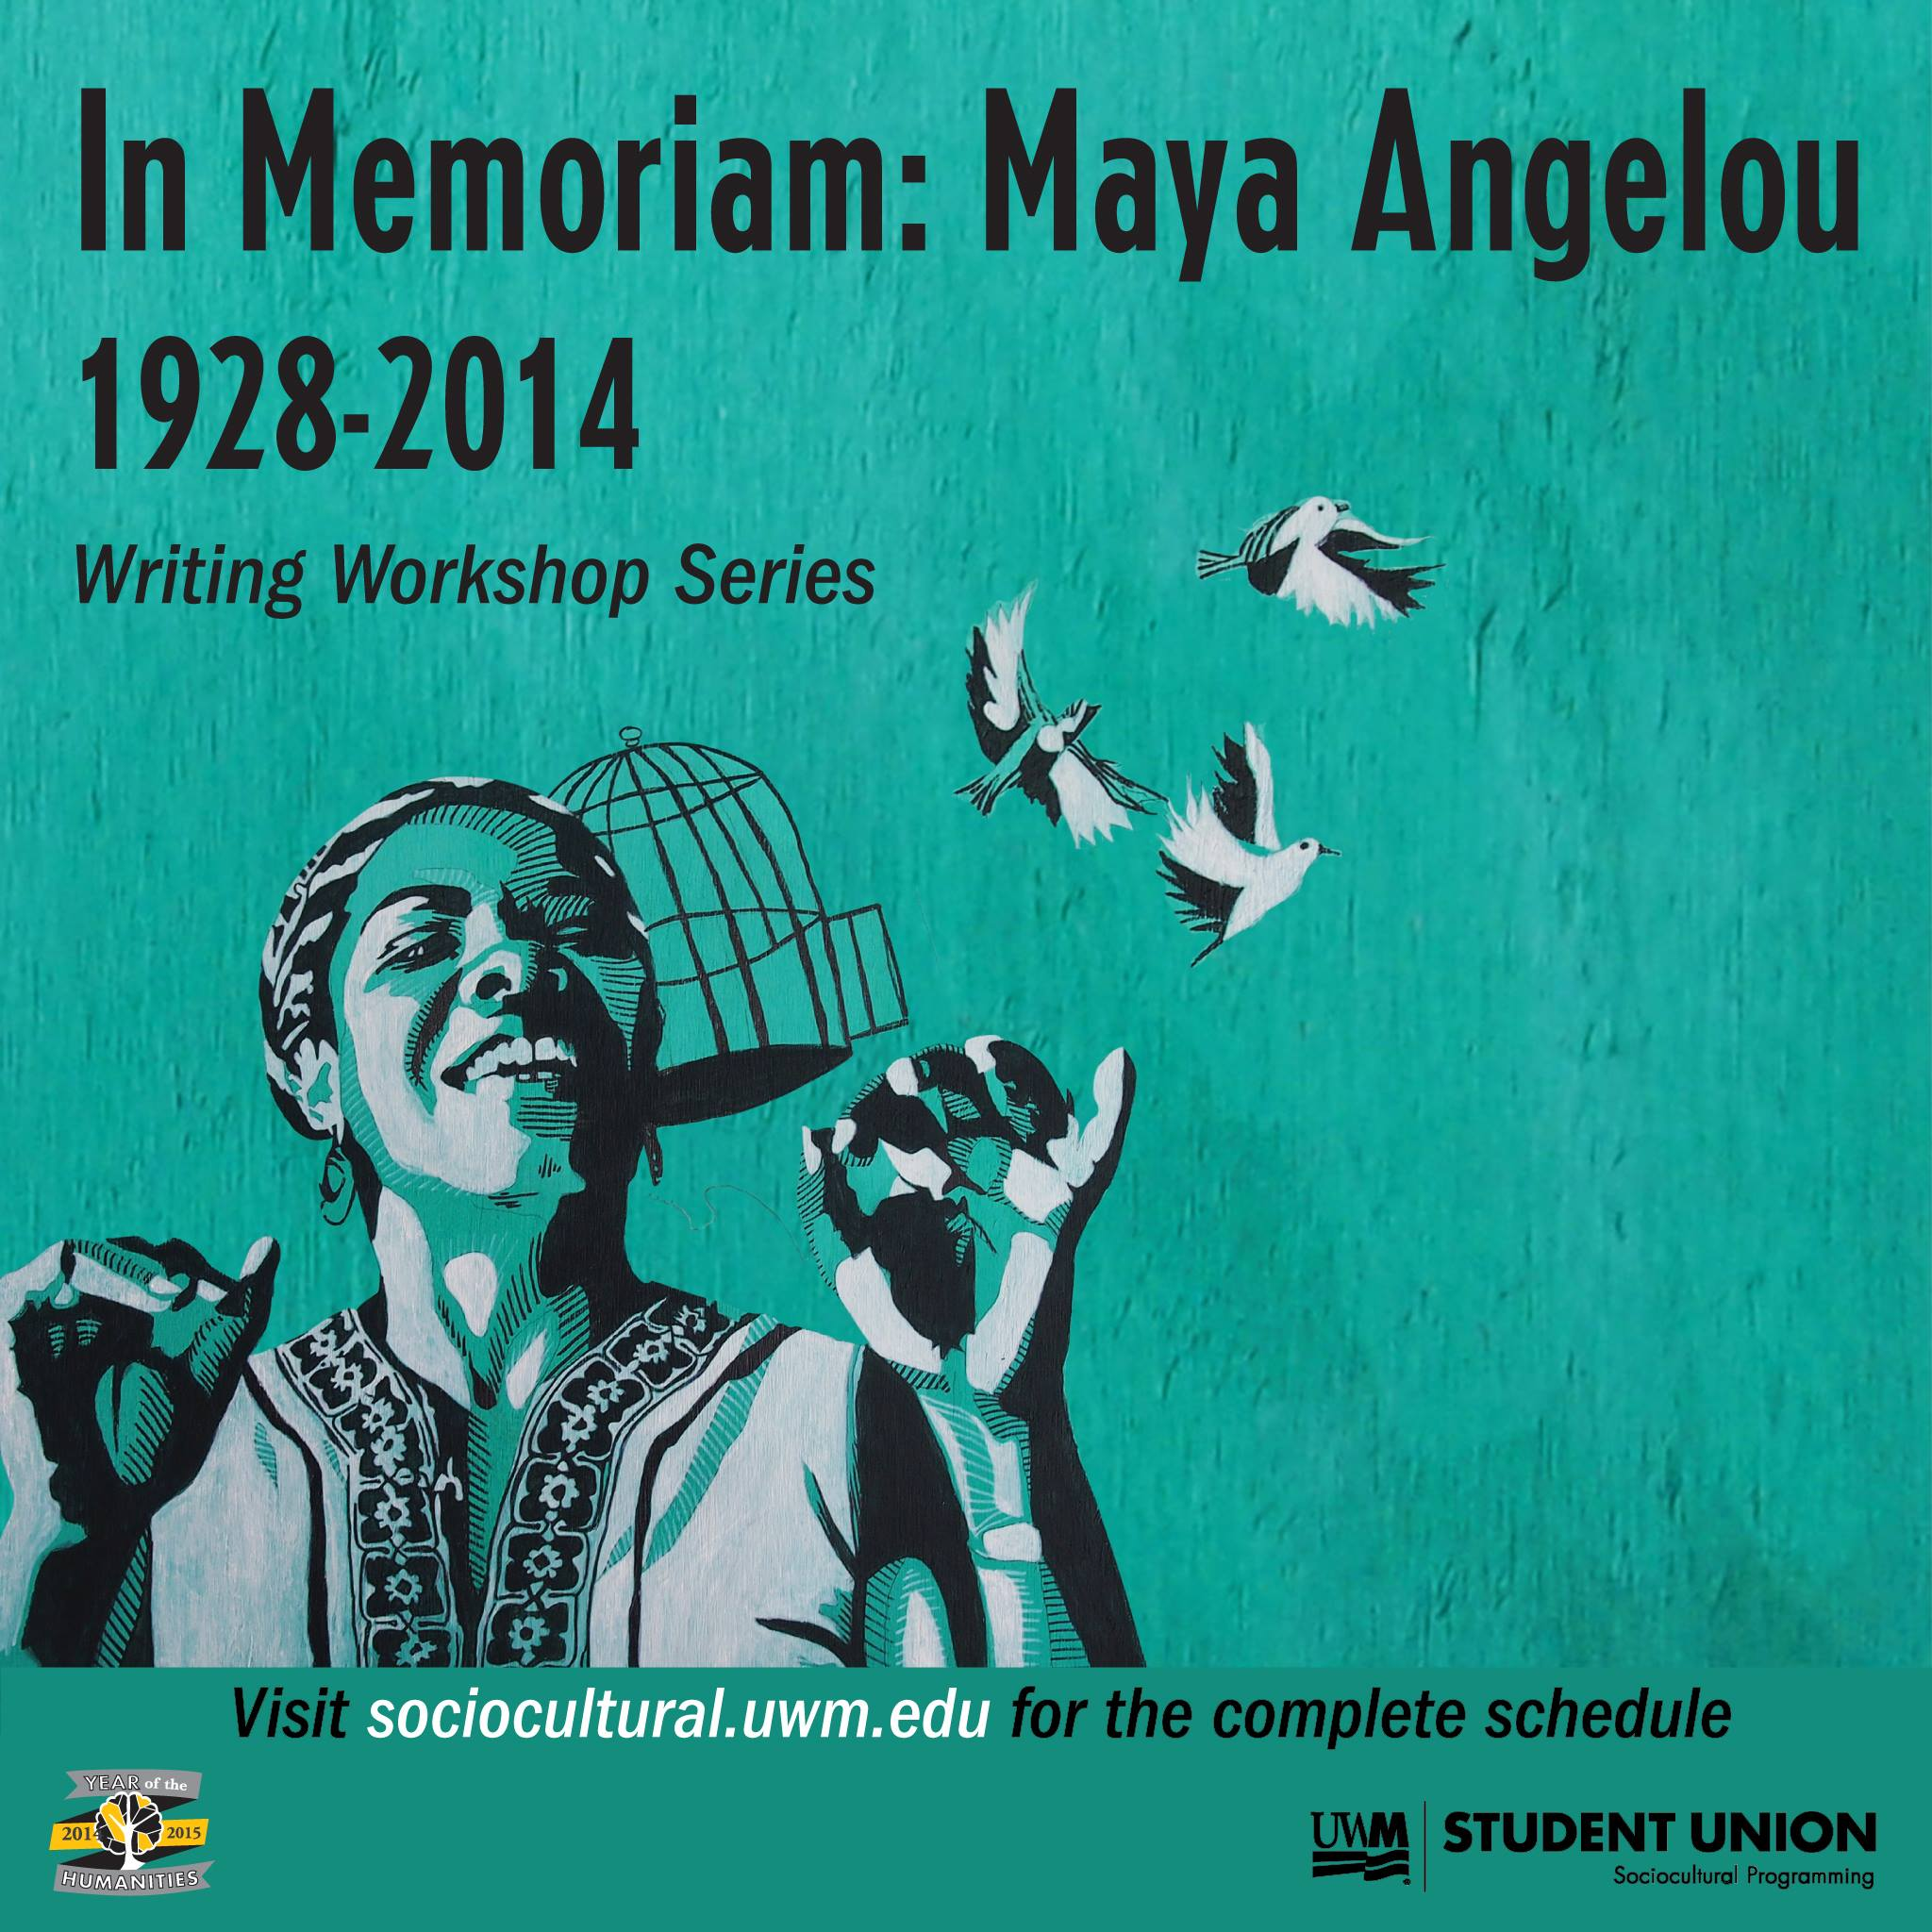 maya angelou 5 essay Maya angelous childhood this essay maya angelous childhood and other 63,000+ term papers, college essay examples and free essays are available now on reviewessayscom autor: reviewessays • december 8, 2010 • essay • 1,087 words (5 pages) • 537 views.